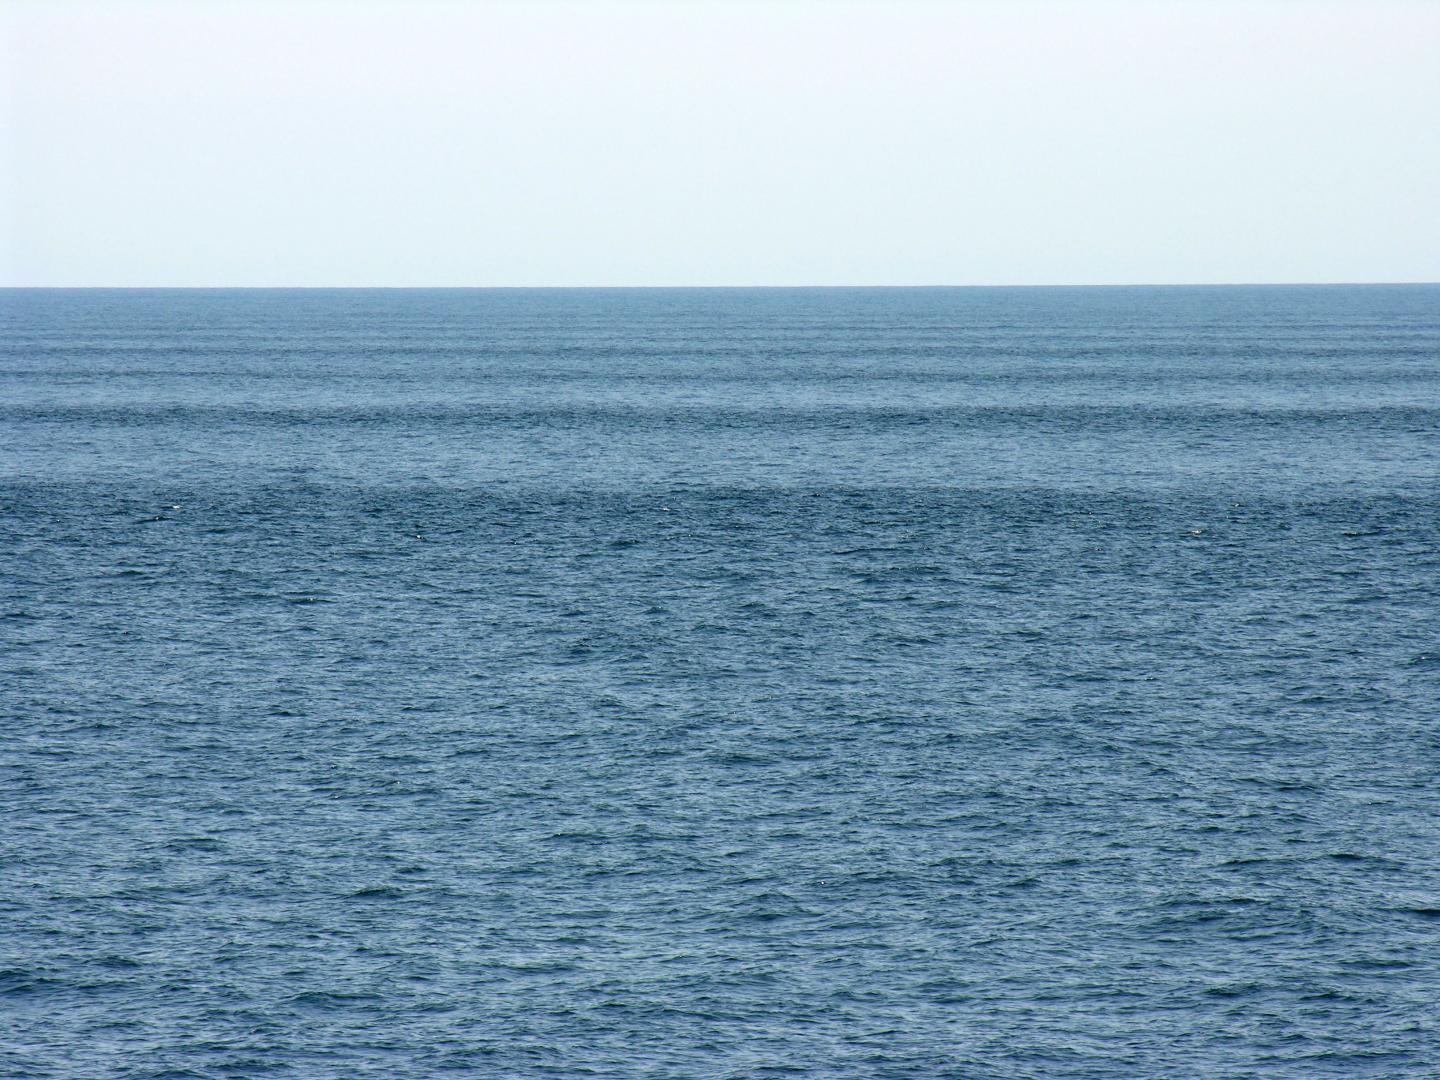 Ocean Waves: Energy, Movement, and the Coast